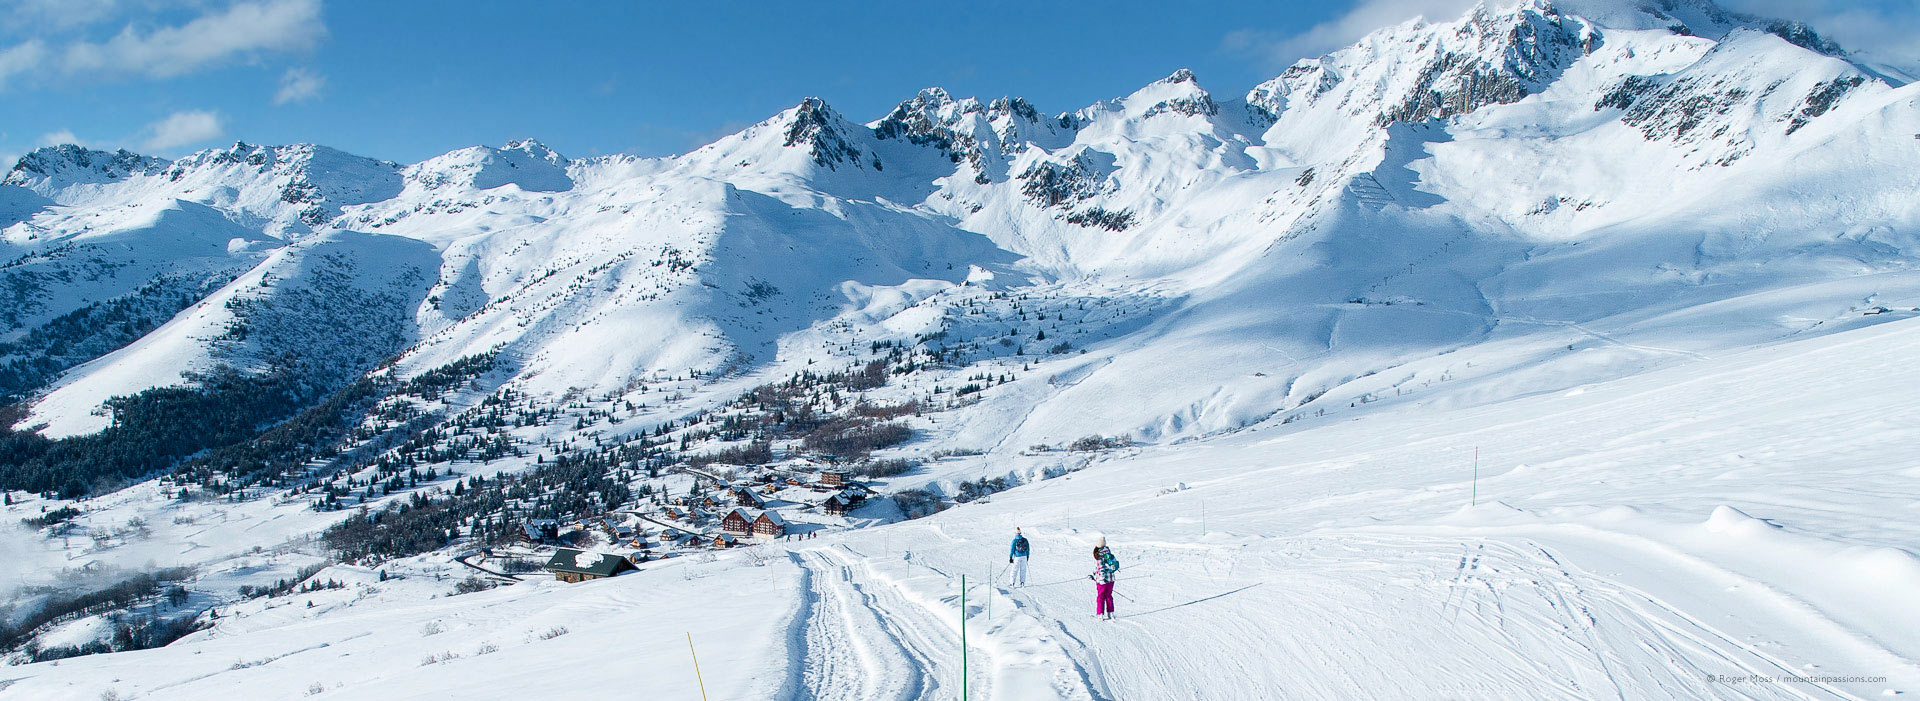 Wide view of skiers with deep snow above mountain village at Saint Francois Longchamp.